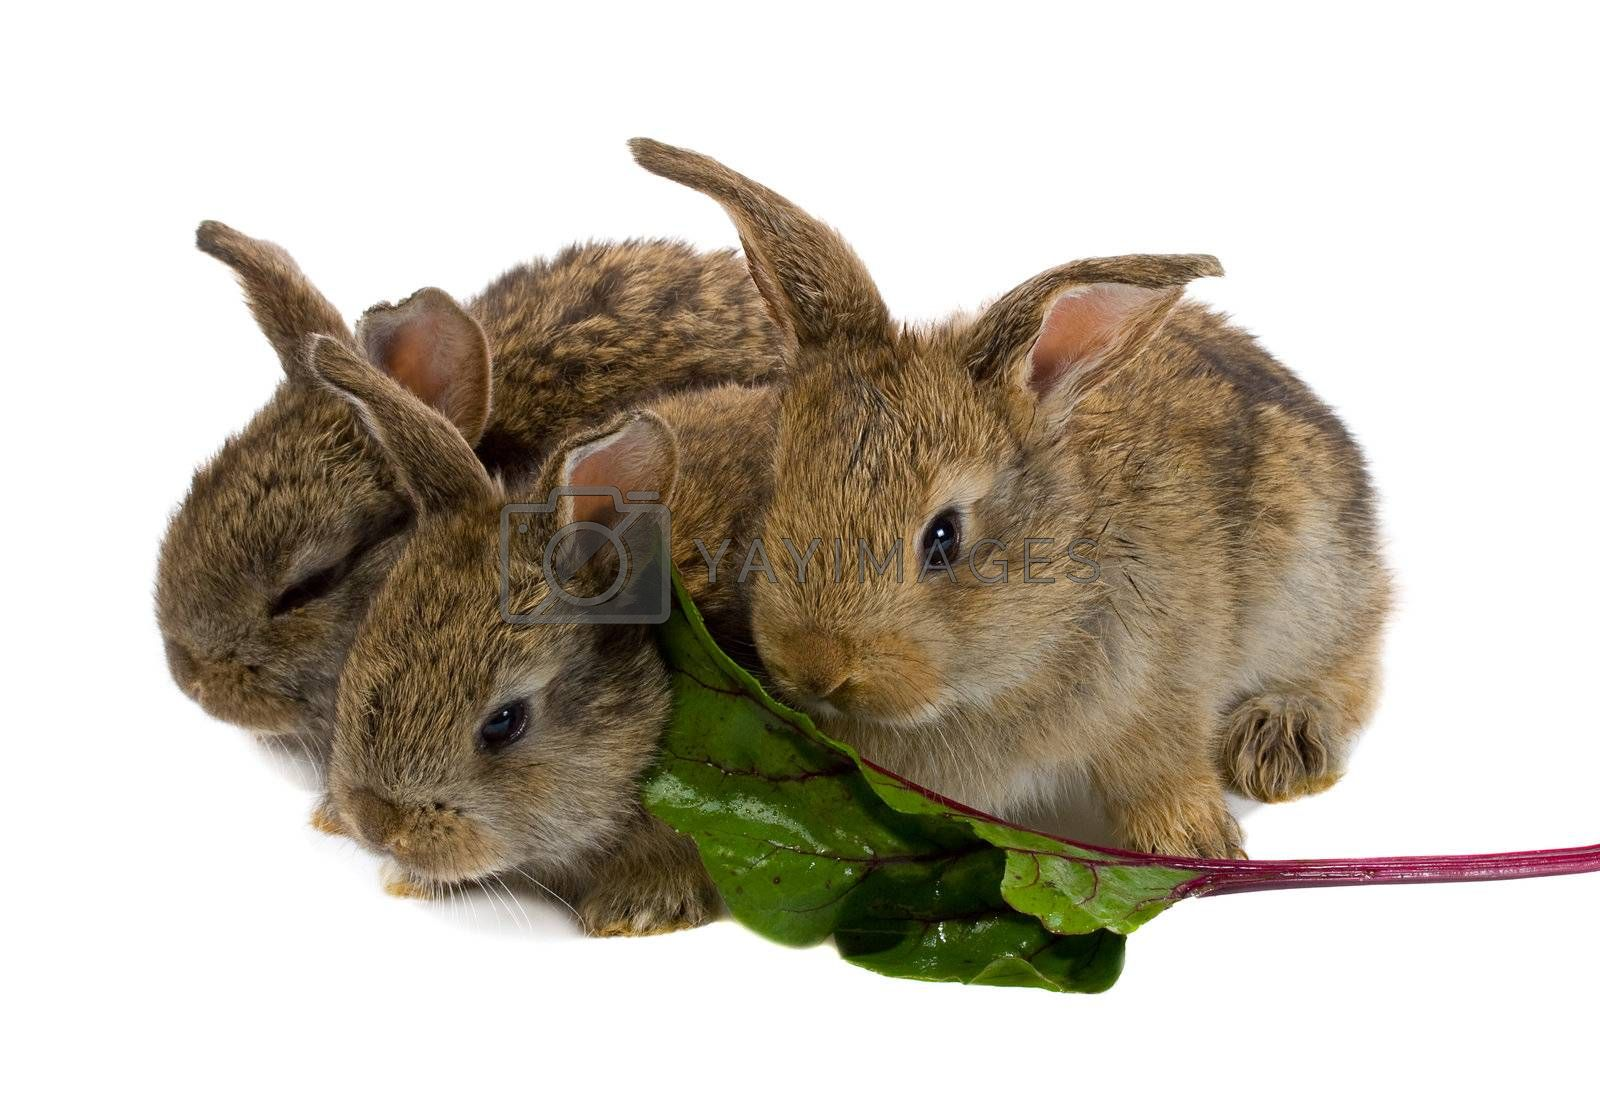 close-up tree little rabbits eating the leaf of red beet, isolated on white